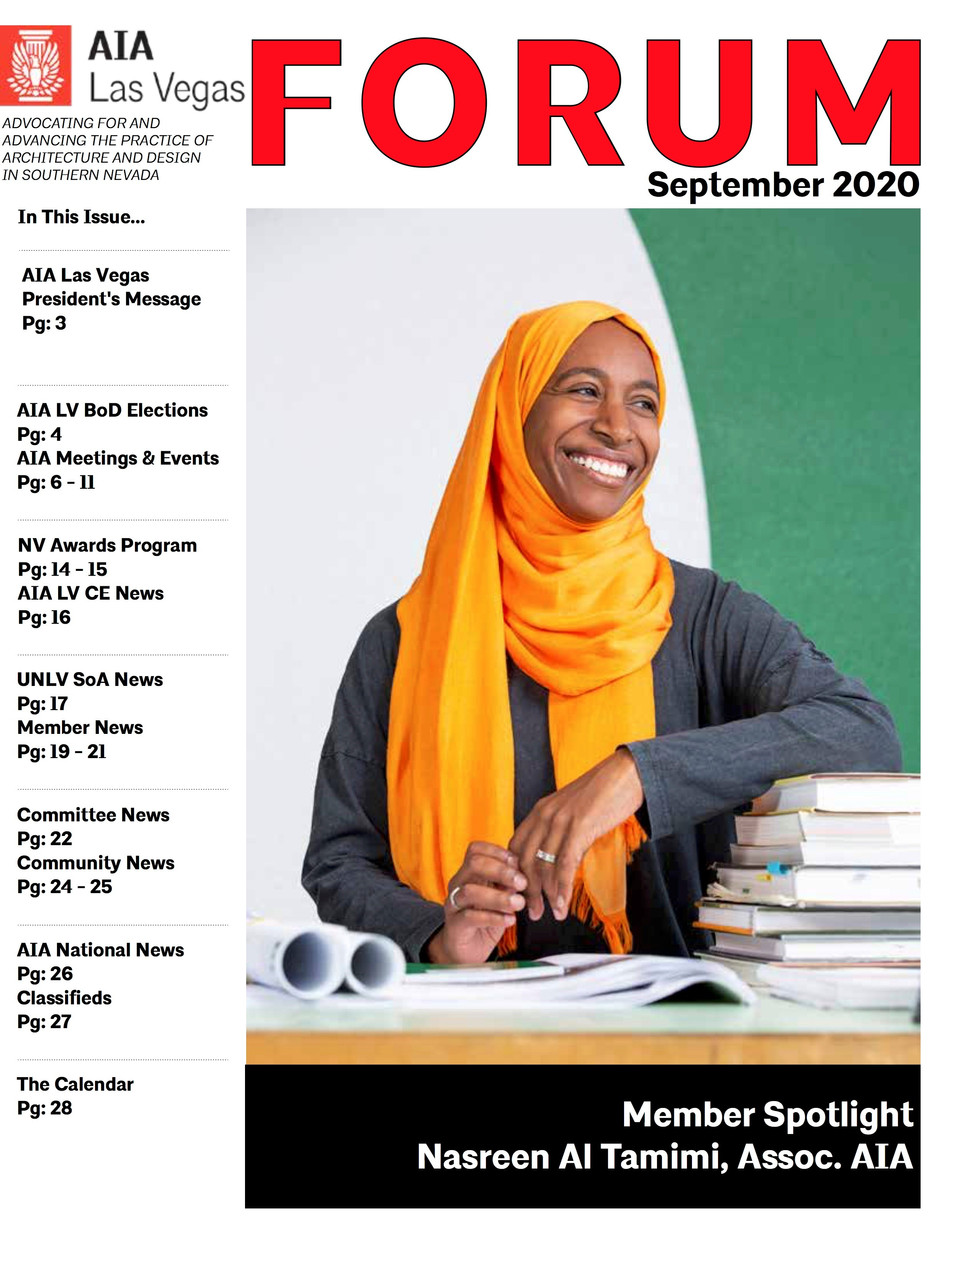 NASREEN FEATURED IN AIA FORUM